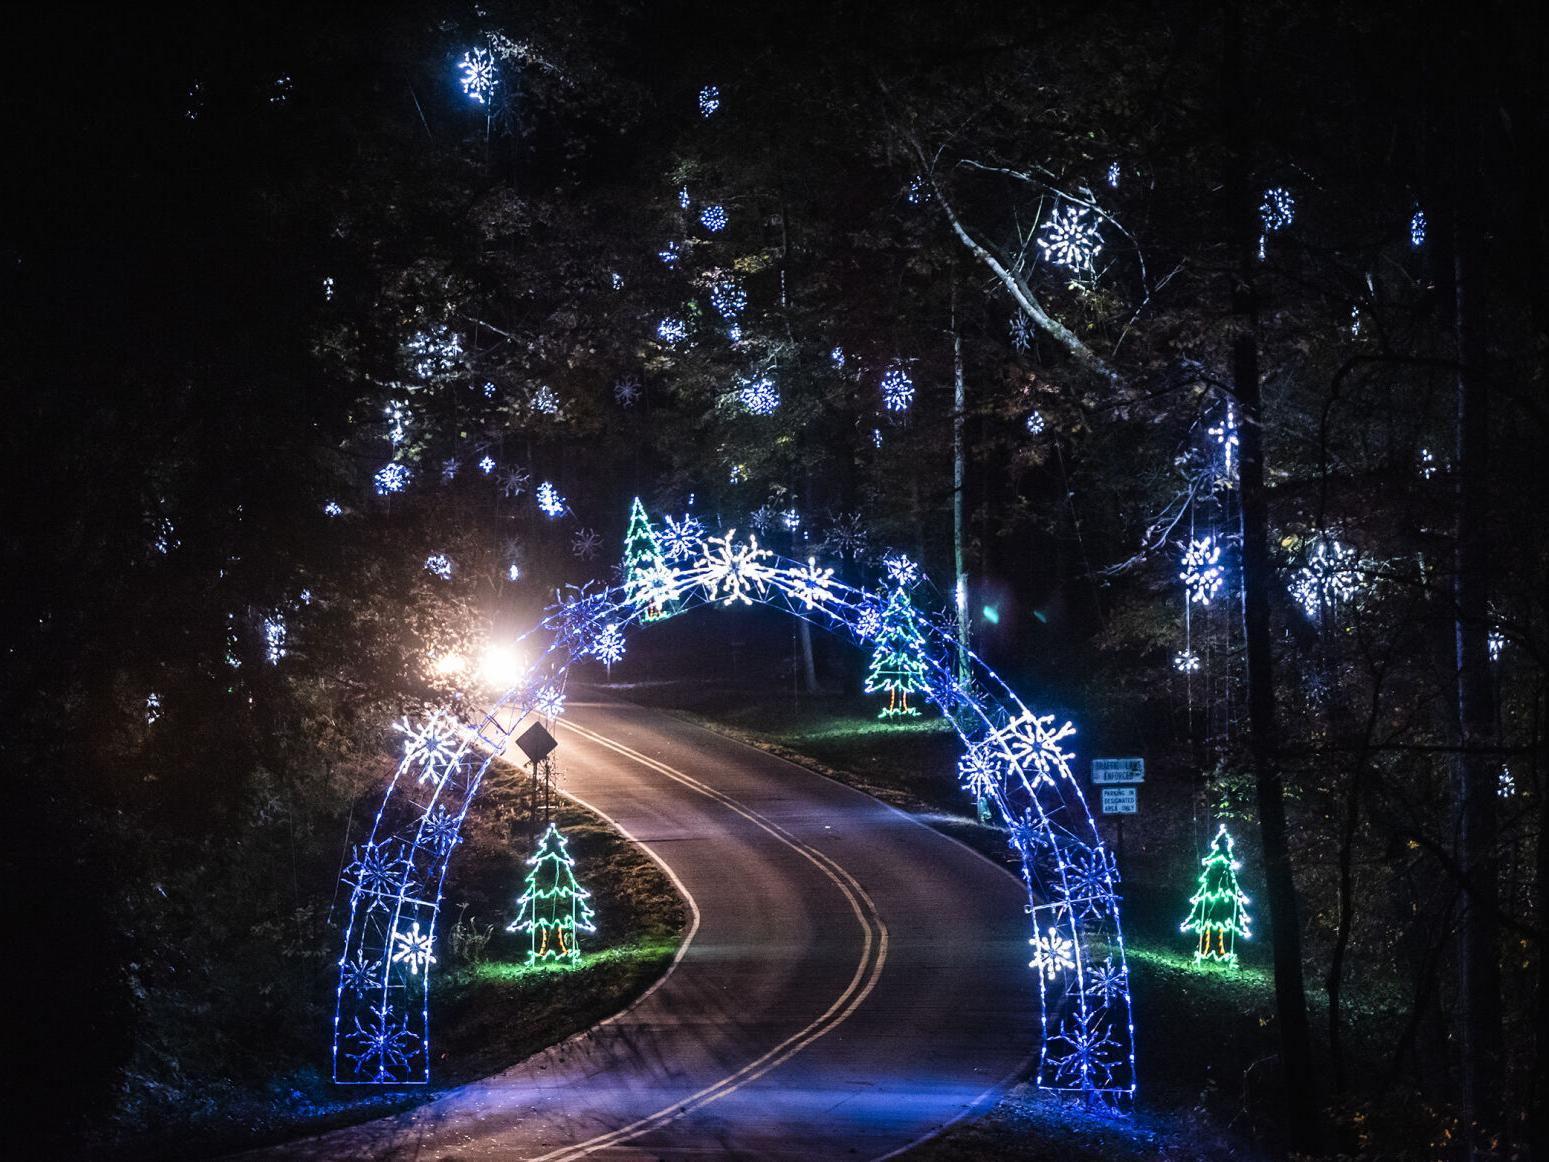 Nc Christmas Lights 2021 Tanglewood Festival Of Lights 2020 2021 Season To Kick Off This Week Good Turnout Expected Arts Theatre Journalnow Com